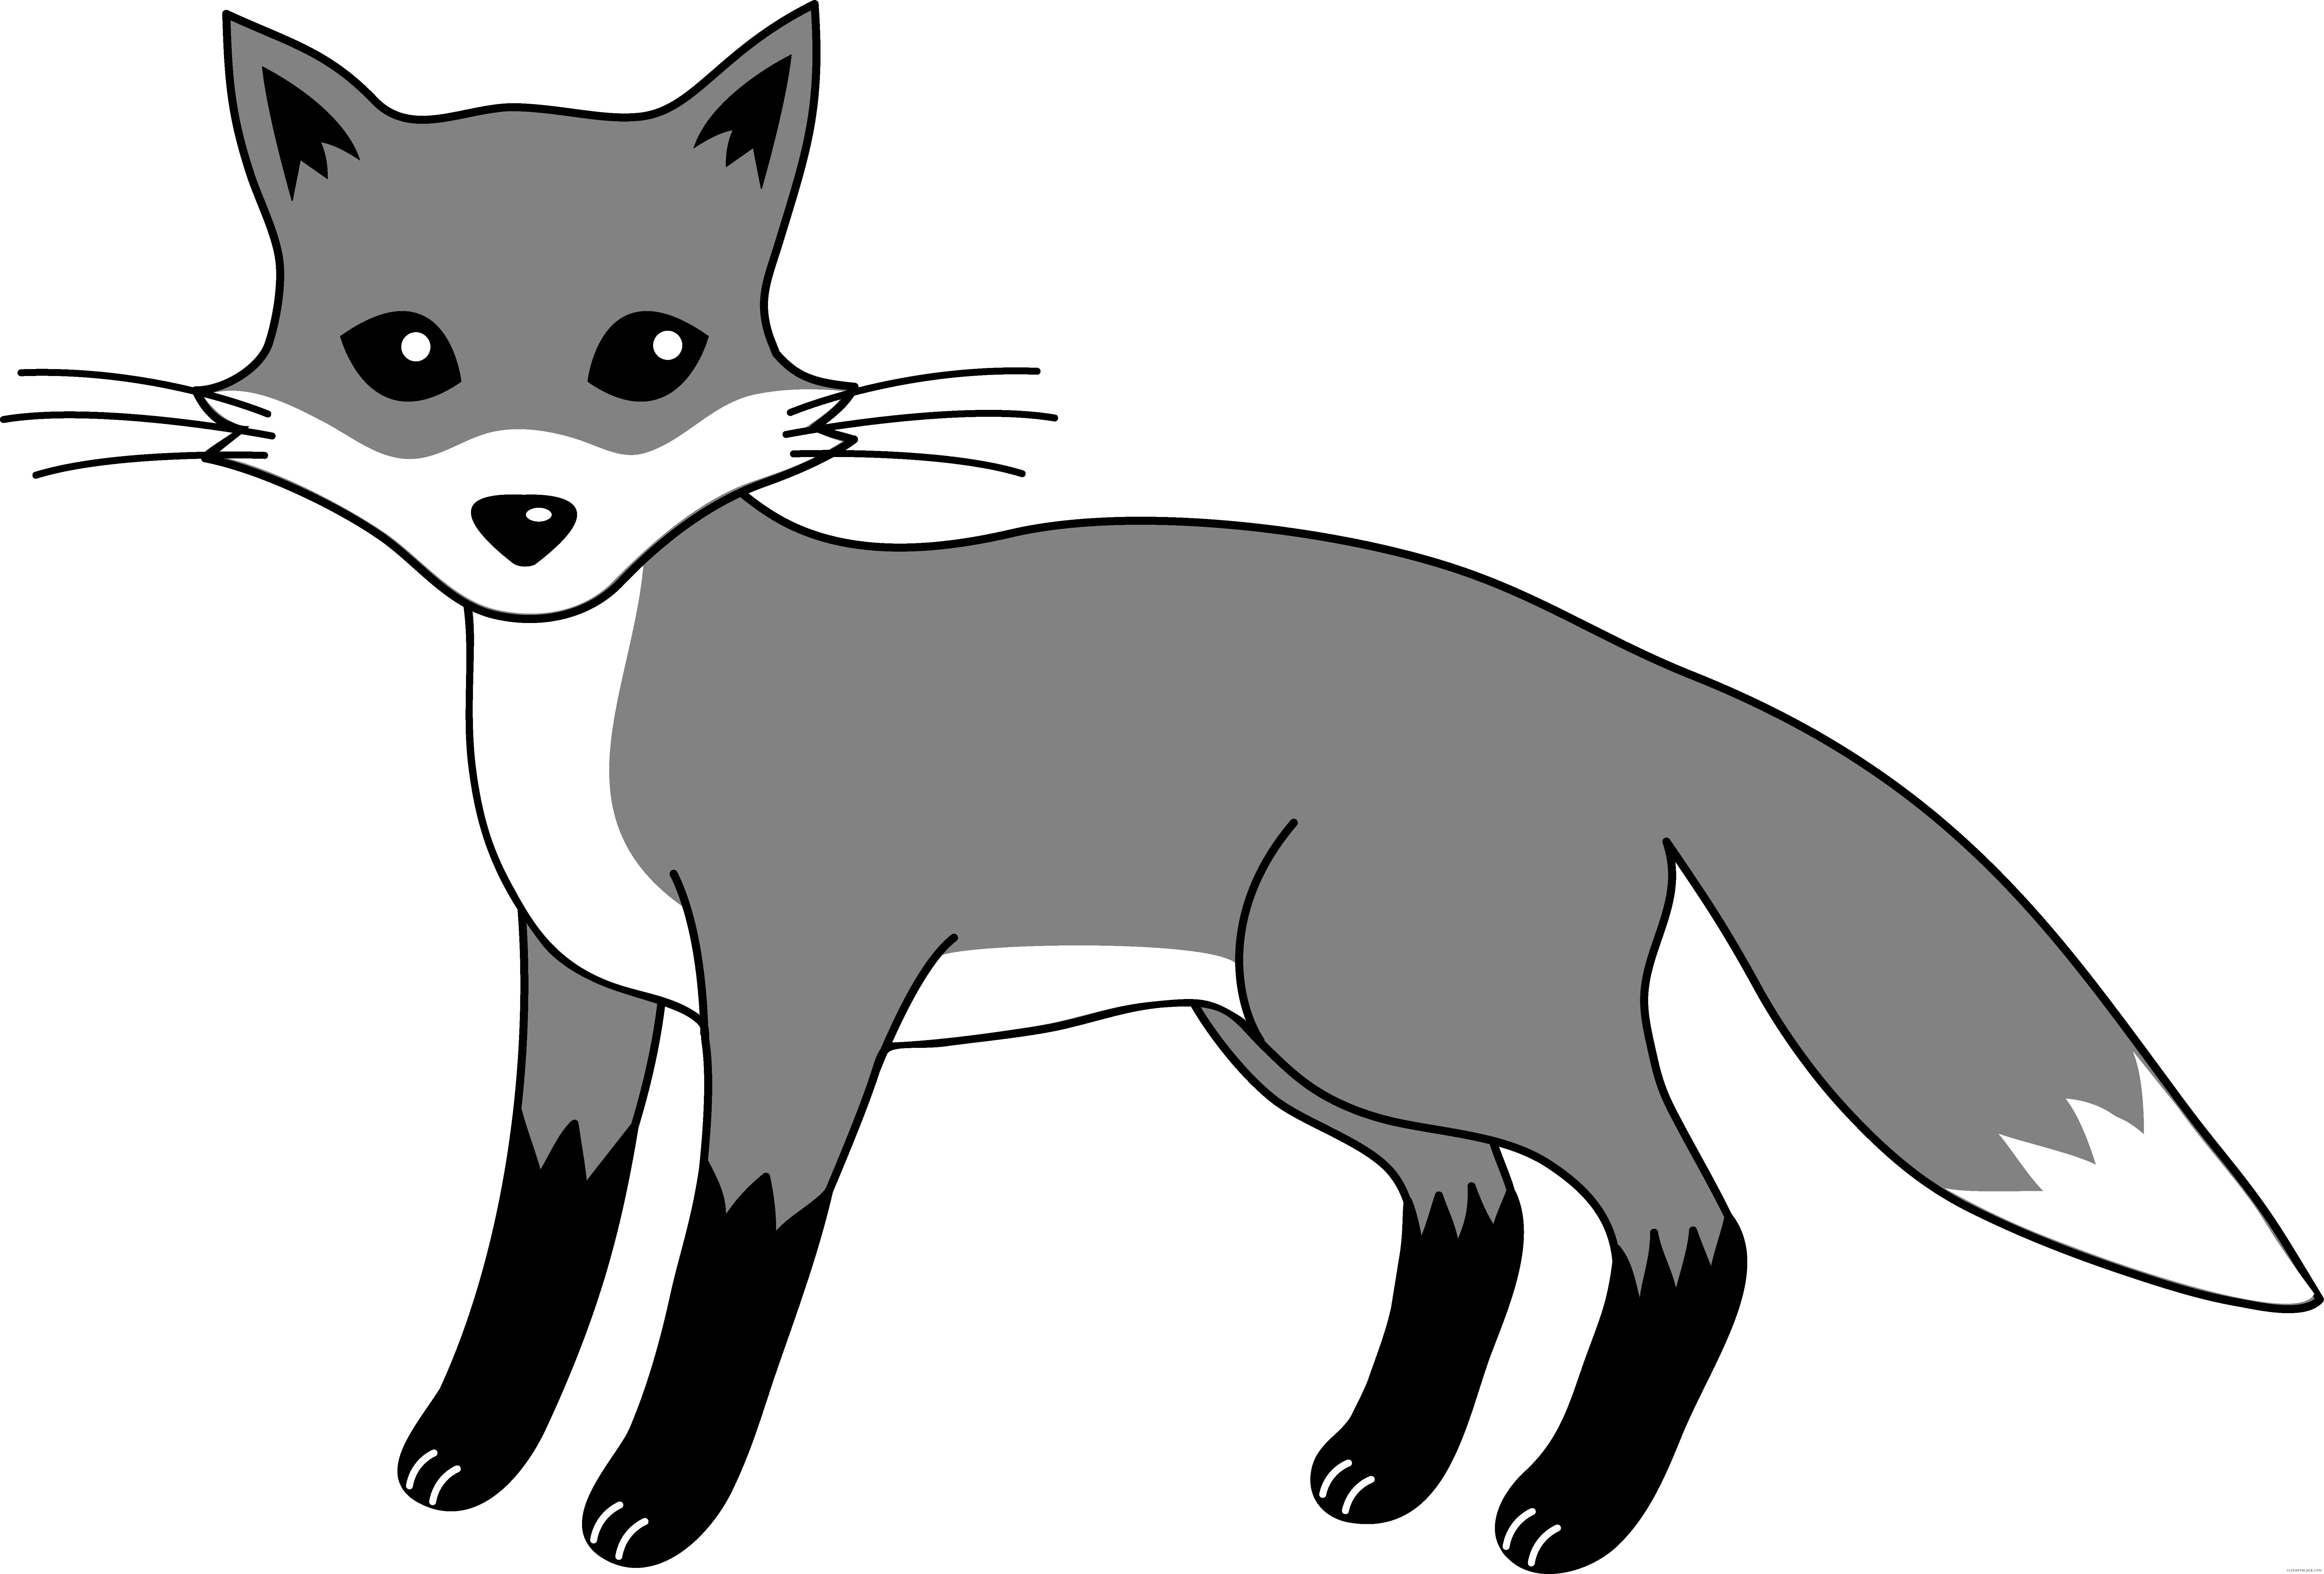 Fox clipart outline. Grayscale animal free black